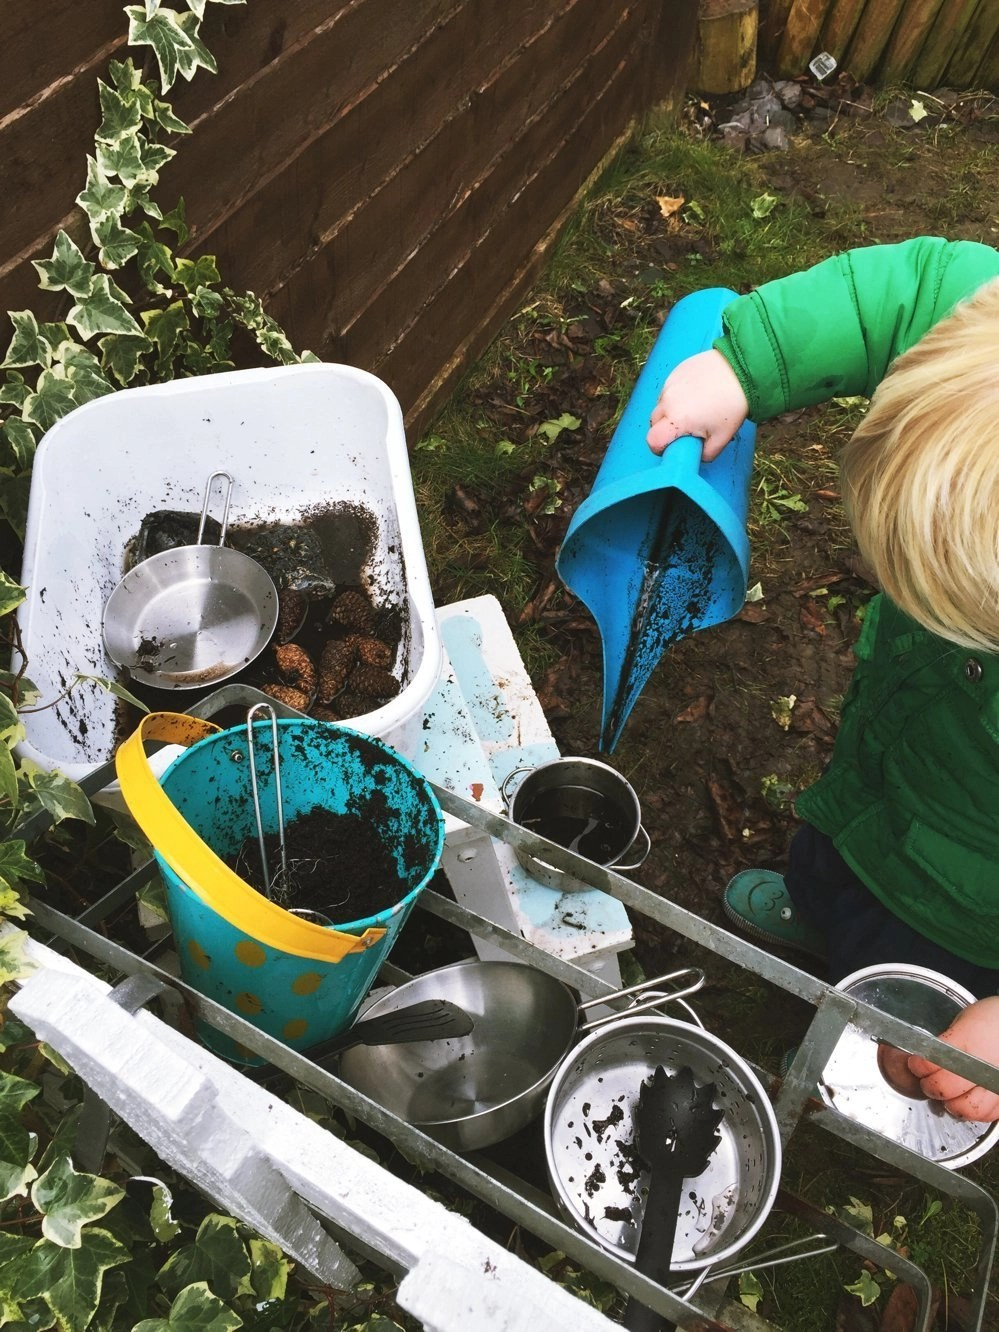 How to make a mud pie station, garden mud pie kitchen, outdoor activities for kids from daisies and pie